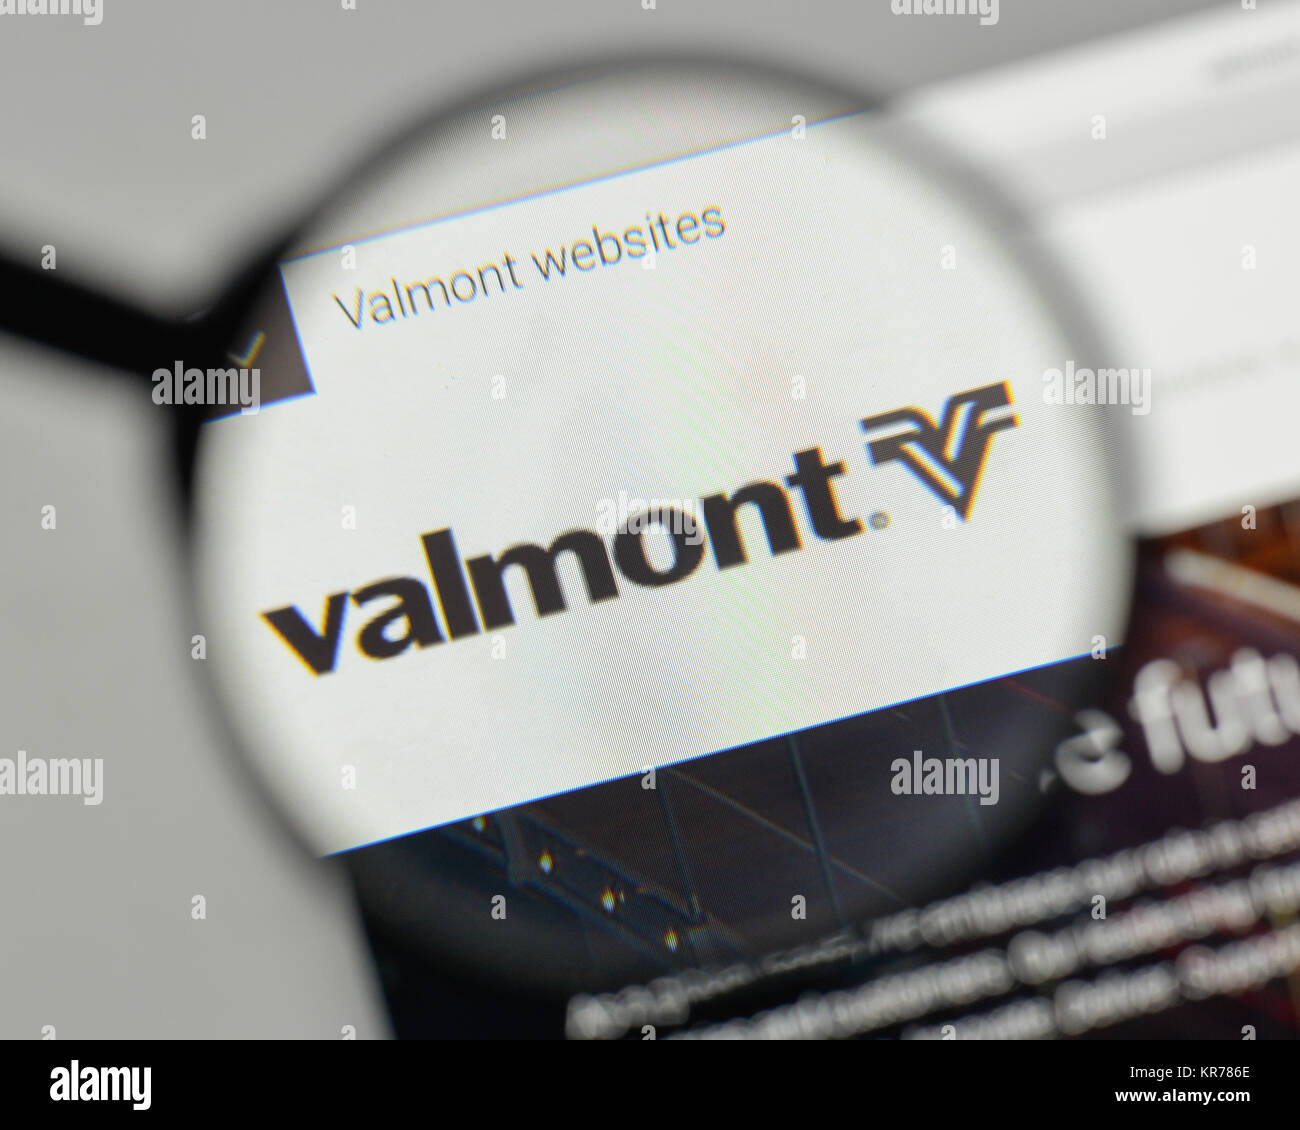 valmont industries team i 1-click job application allows you to apply to 11+ jobs at valmont industries find career vacancies near you that are hiring now on ziprecruiter.